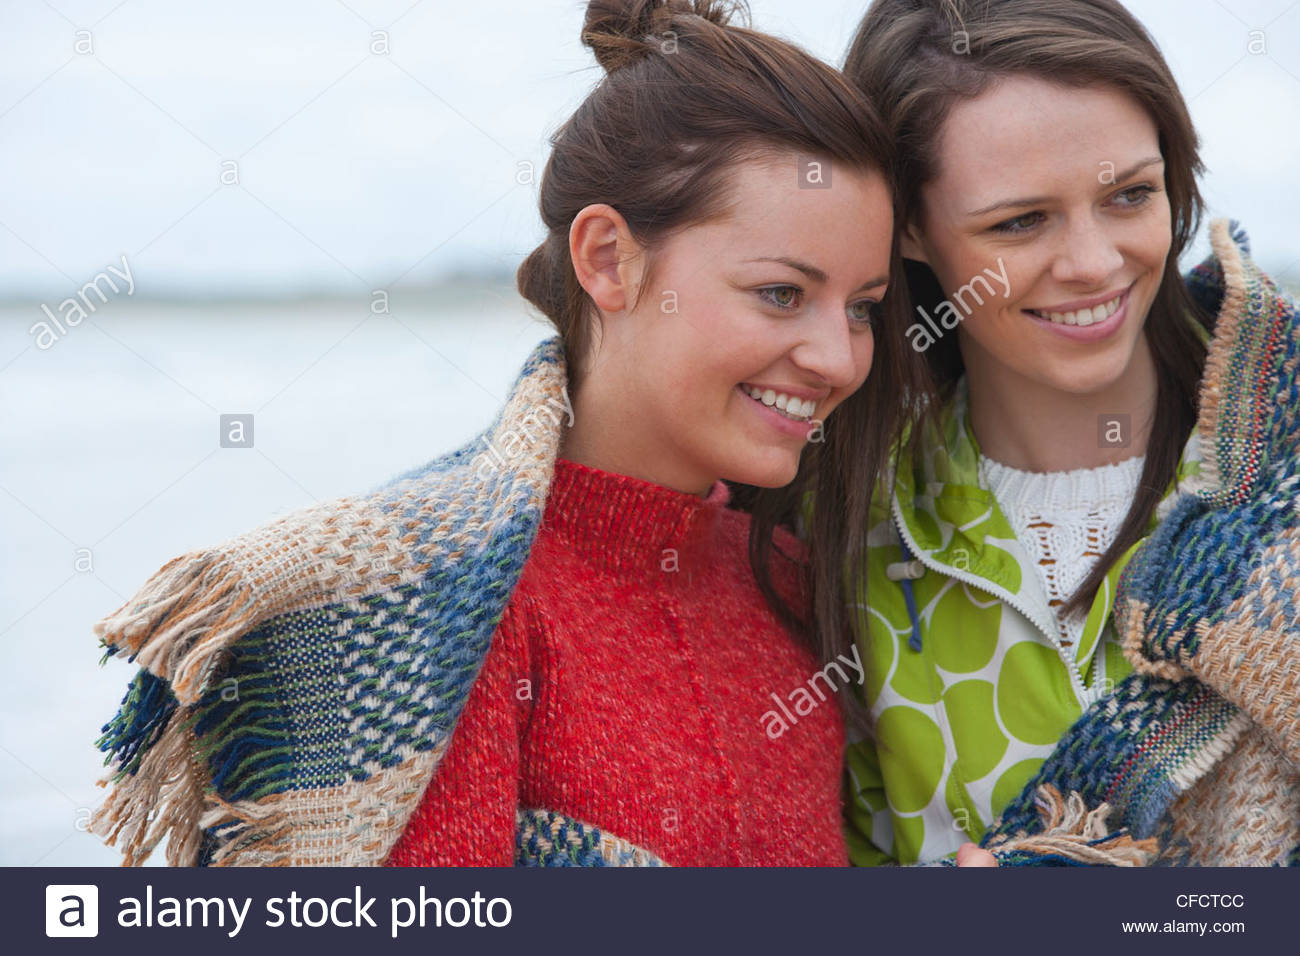 Smiling young women wrapped in a blanket on beach - Stock Image